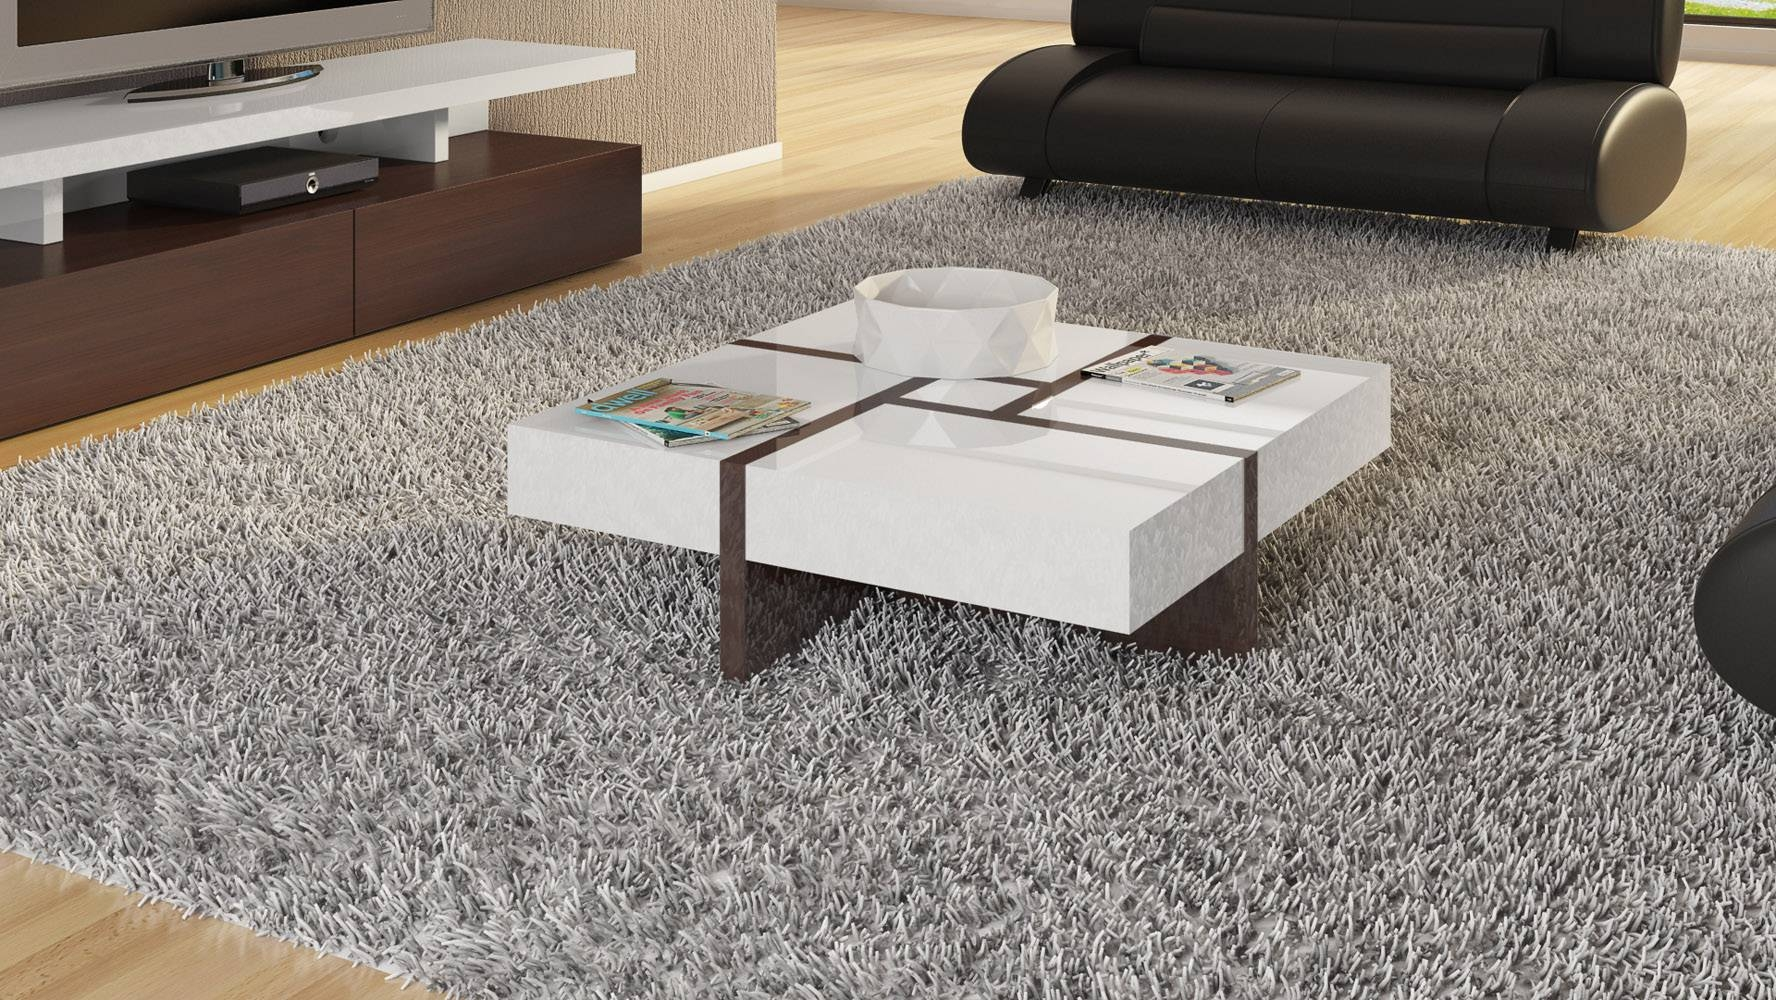 Mcintosh High Gloss Coffee Table With Storage - White Square for White Coffee Tables With Storage (Image 18 of 30)